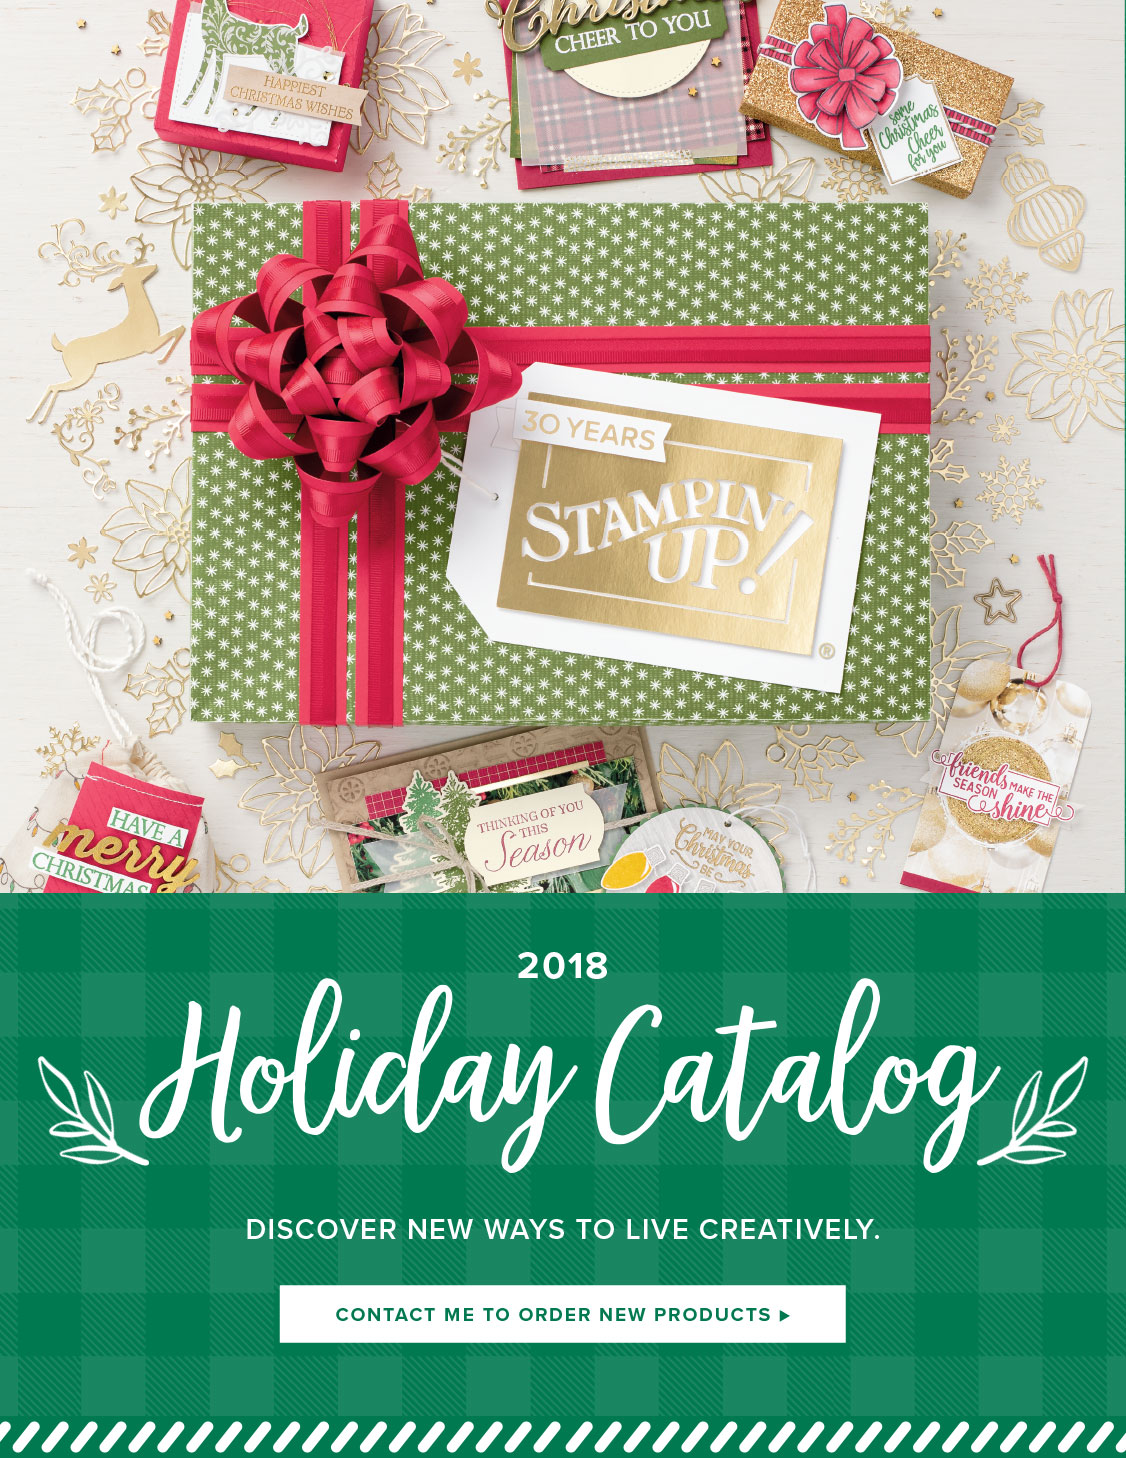 2018 Holiday catalog, Wendy Lee, stampin up, papercrafting, #creativeleeyours, creativelyyours, creative-lee yous, SU, rubber stamps, stamping, DIY, holiday gifts